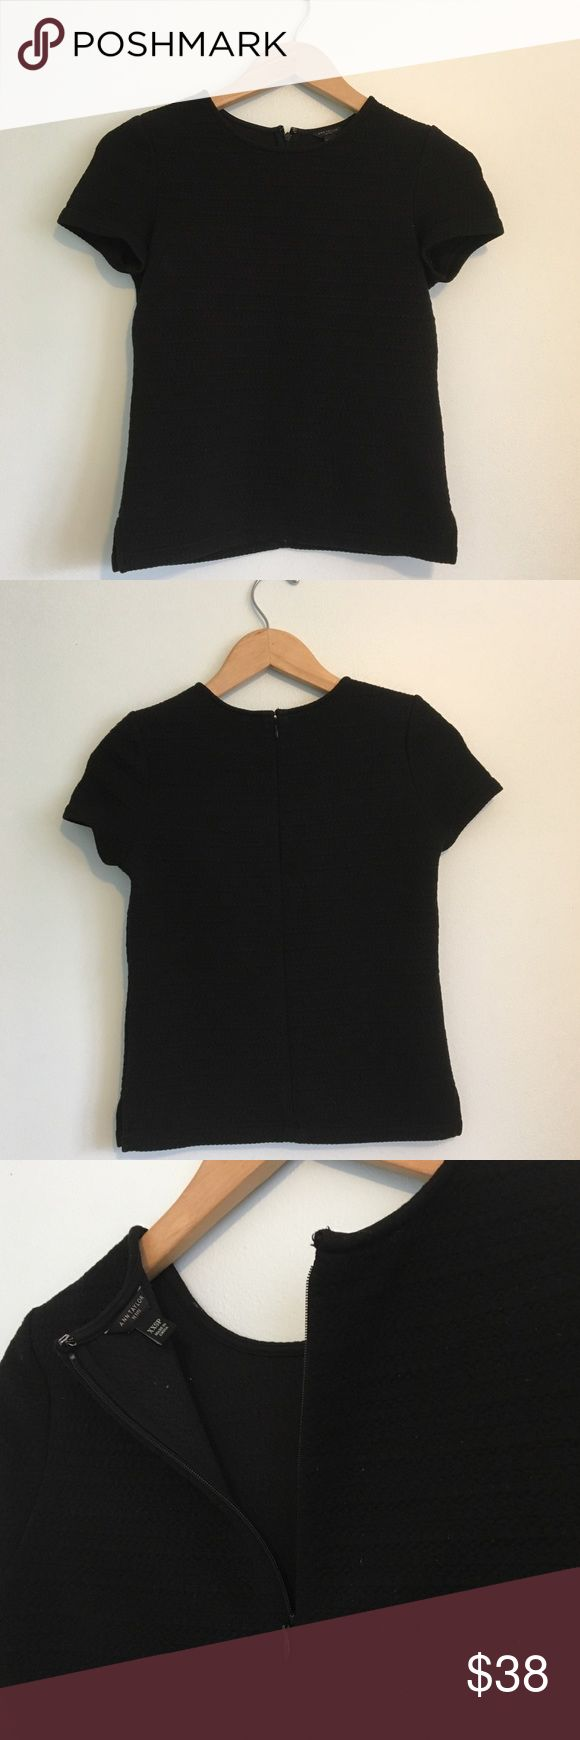 Ann Taylor Petite Black Textured Short Sleeve Top This stylish top is from Ann Taylor's petite line of women's clothing. The fabric is thick and has a unique knit texture (see pictures for details). Zipper on the back, with a hook and eye closure. Small slit on the sides.   Perfect top for work, school, or every day wear. Would look excellent with a structured blazer or a full skirt.  XXS Petite  Used, in excellent condition! Ann Taylor Tops